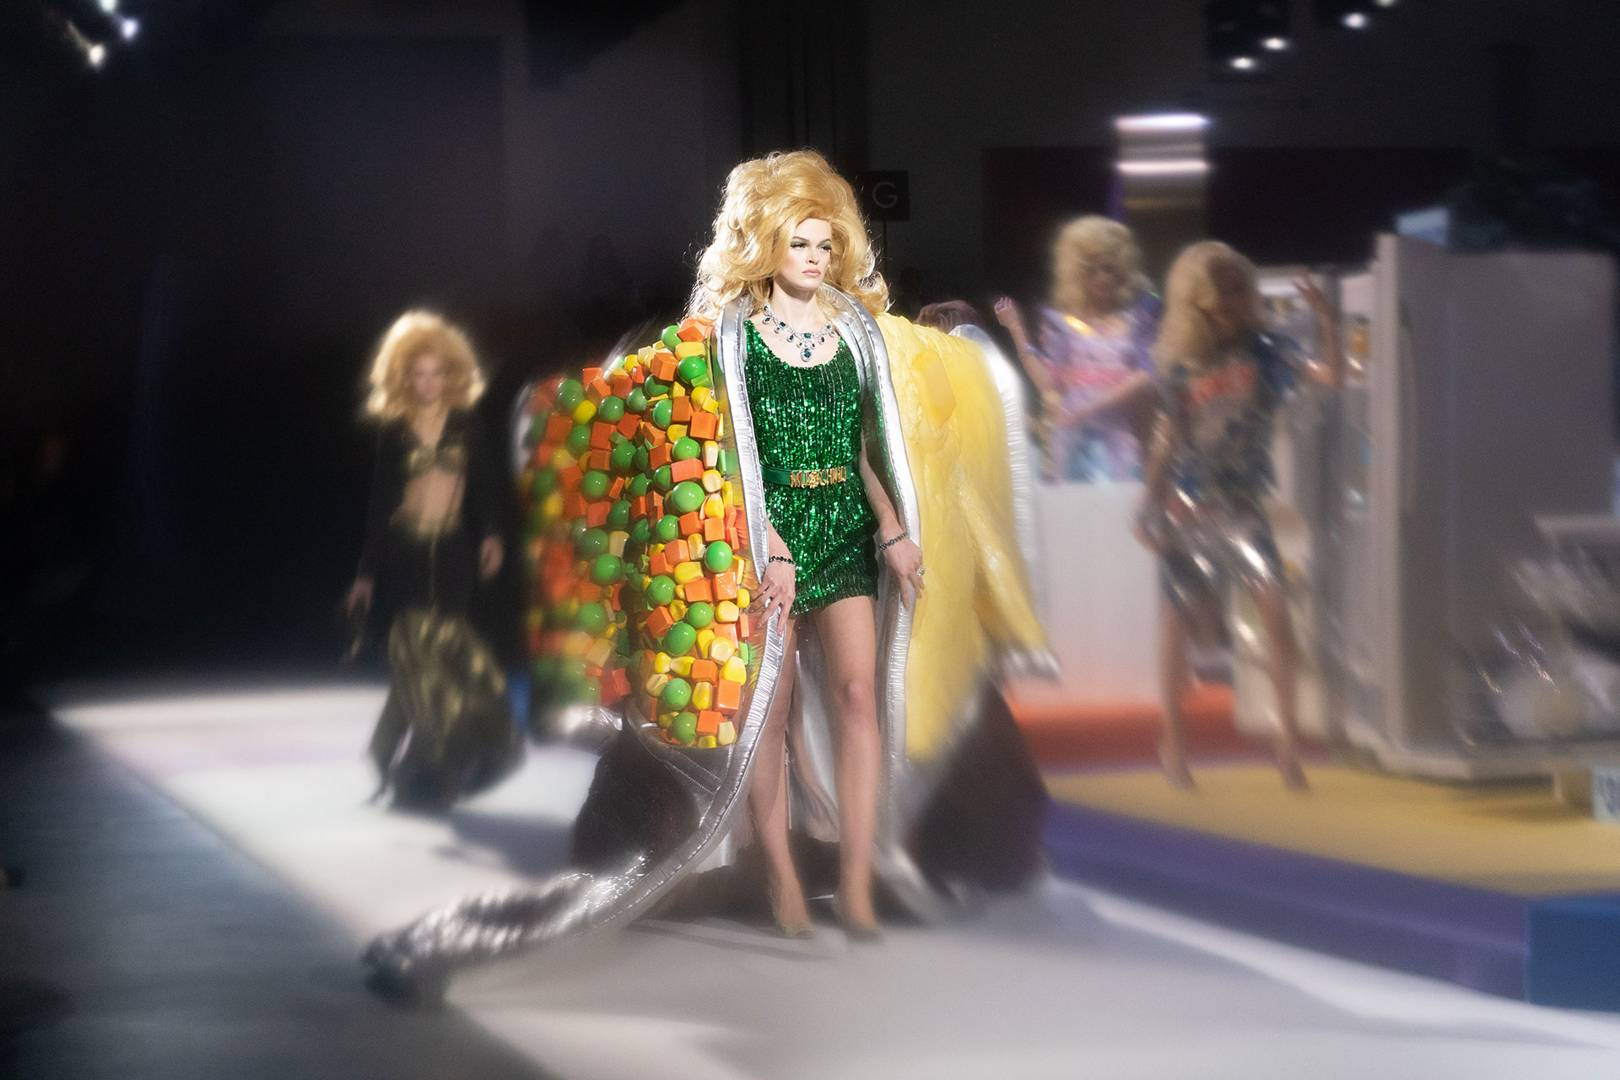 c0a4490b4d0 Moschino's AW19 Collection Is Full Of Winning Looks For The Met Gala 2019    British Vogue